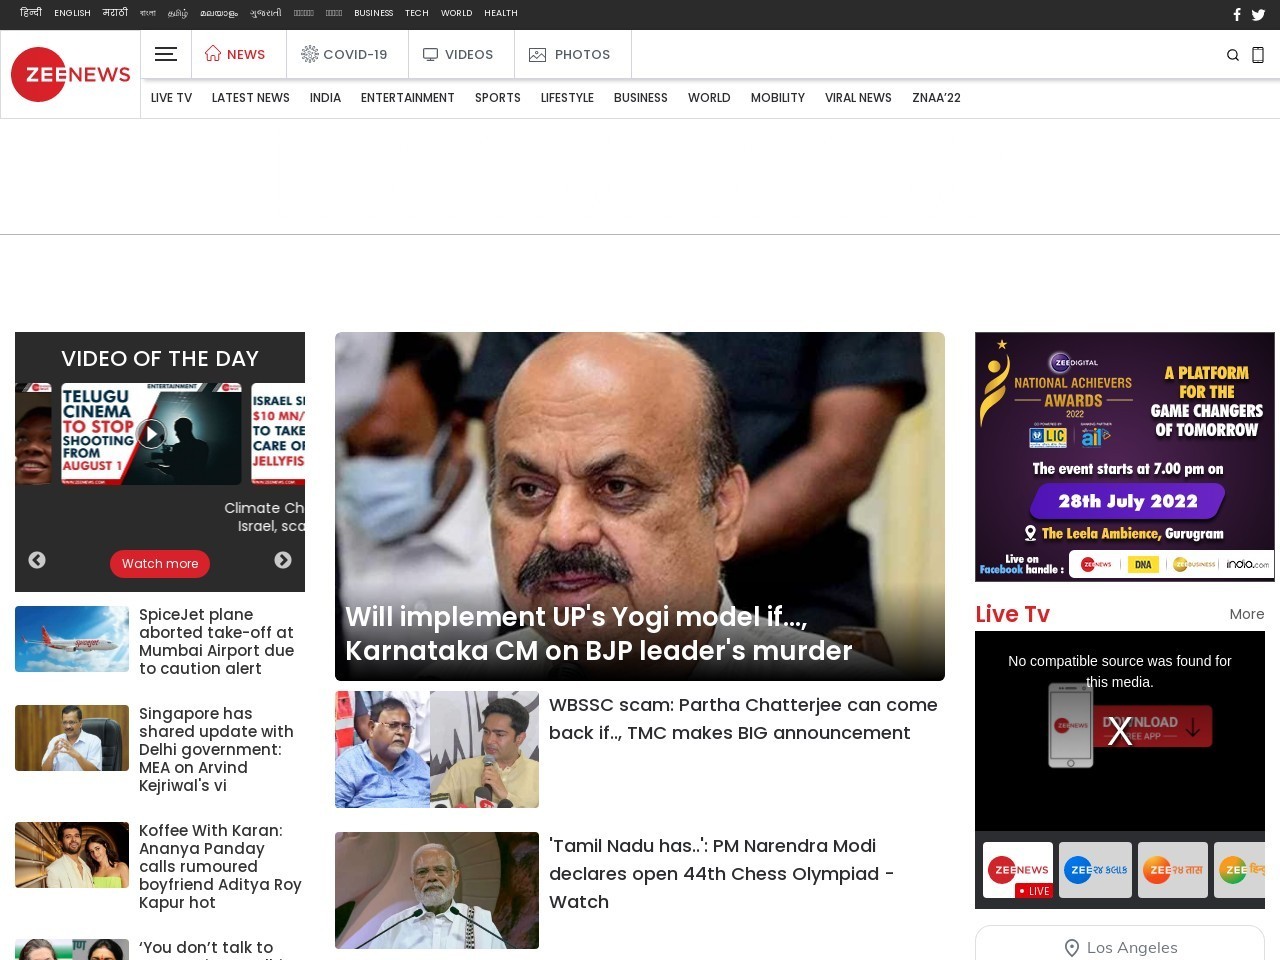 Roger Federer vs Rafael Nadal – Fans dig deep into their pockets to watch epic final between two greats